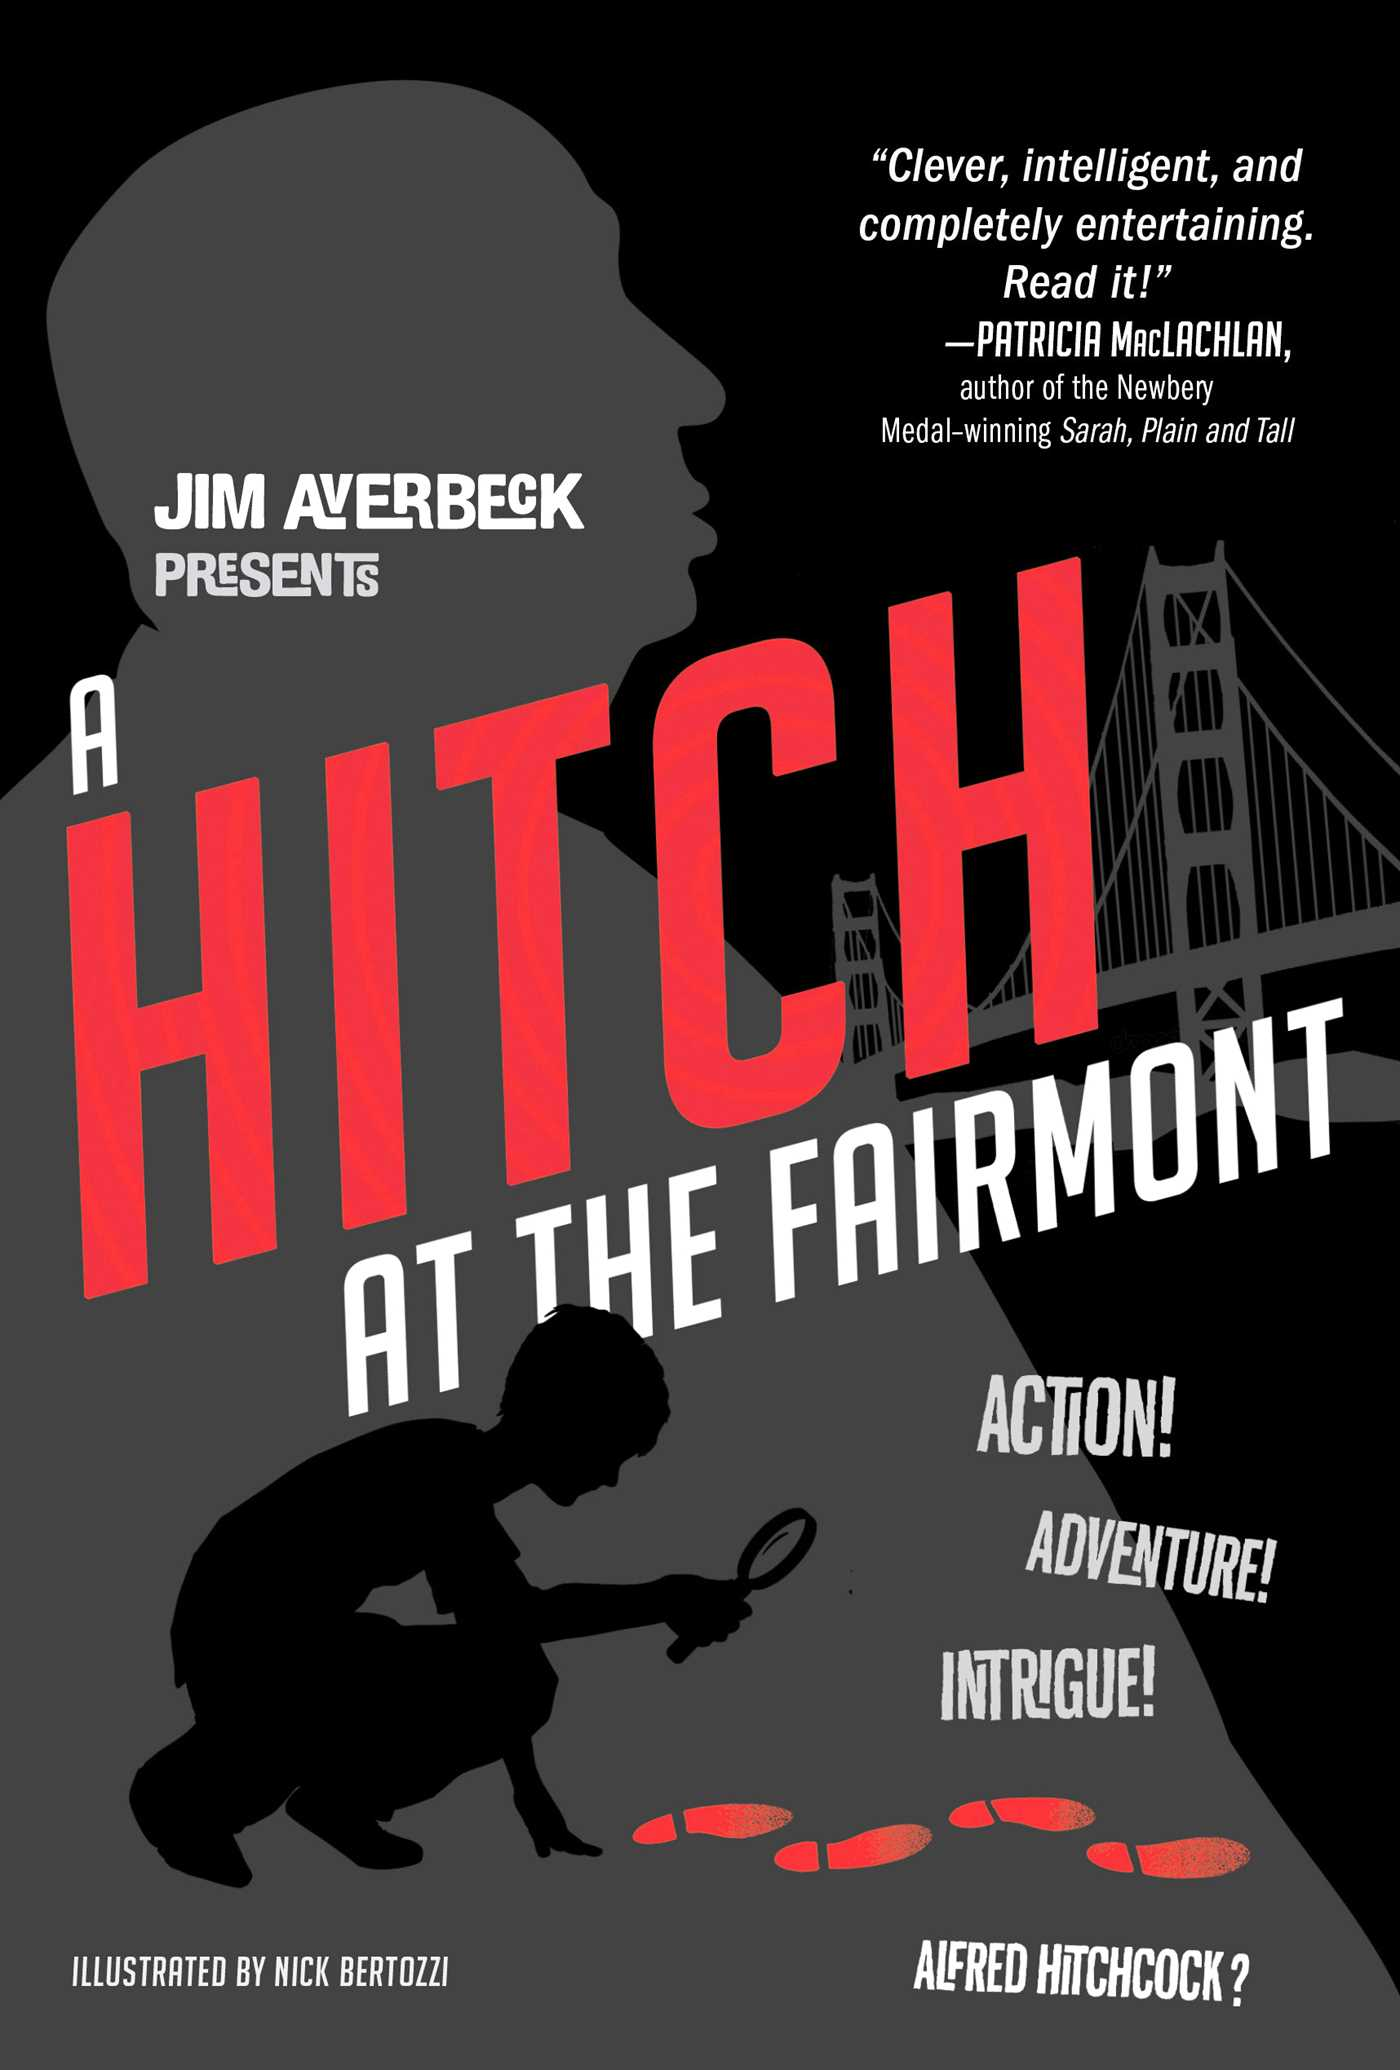 Hitch-at-the-fairmont-9781442494473_hr